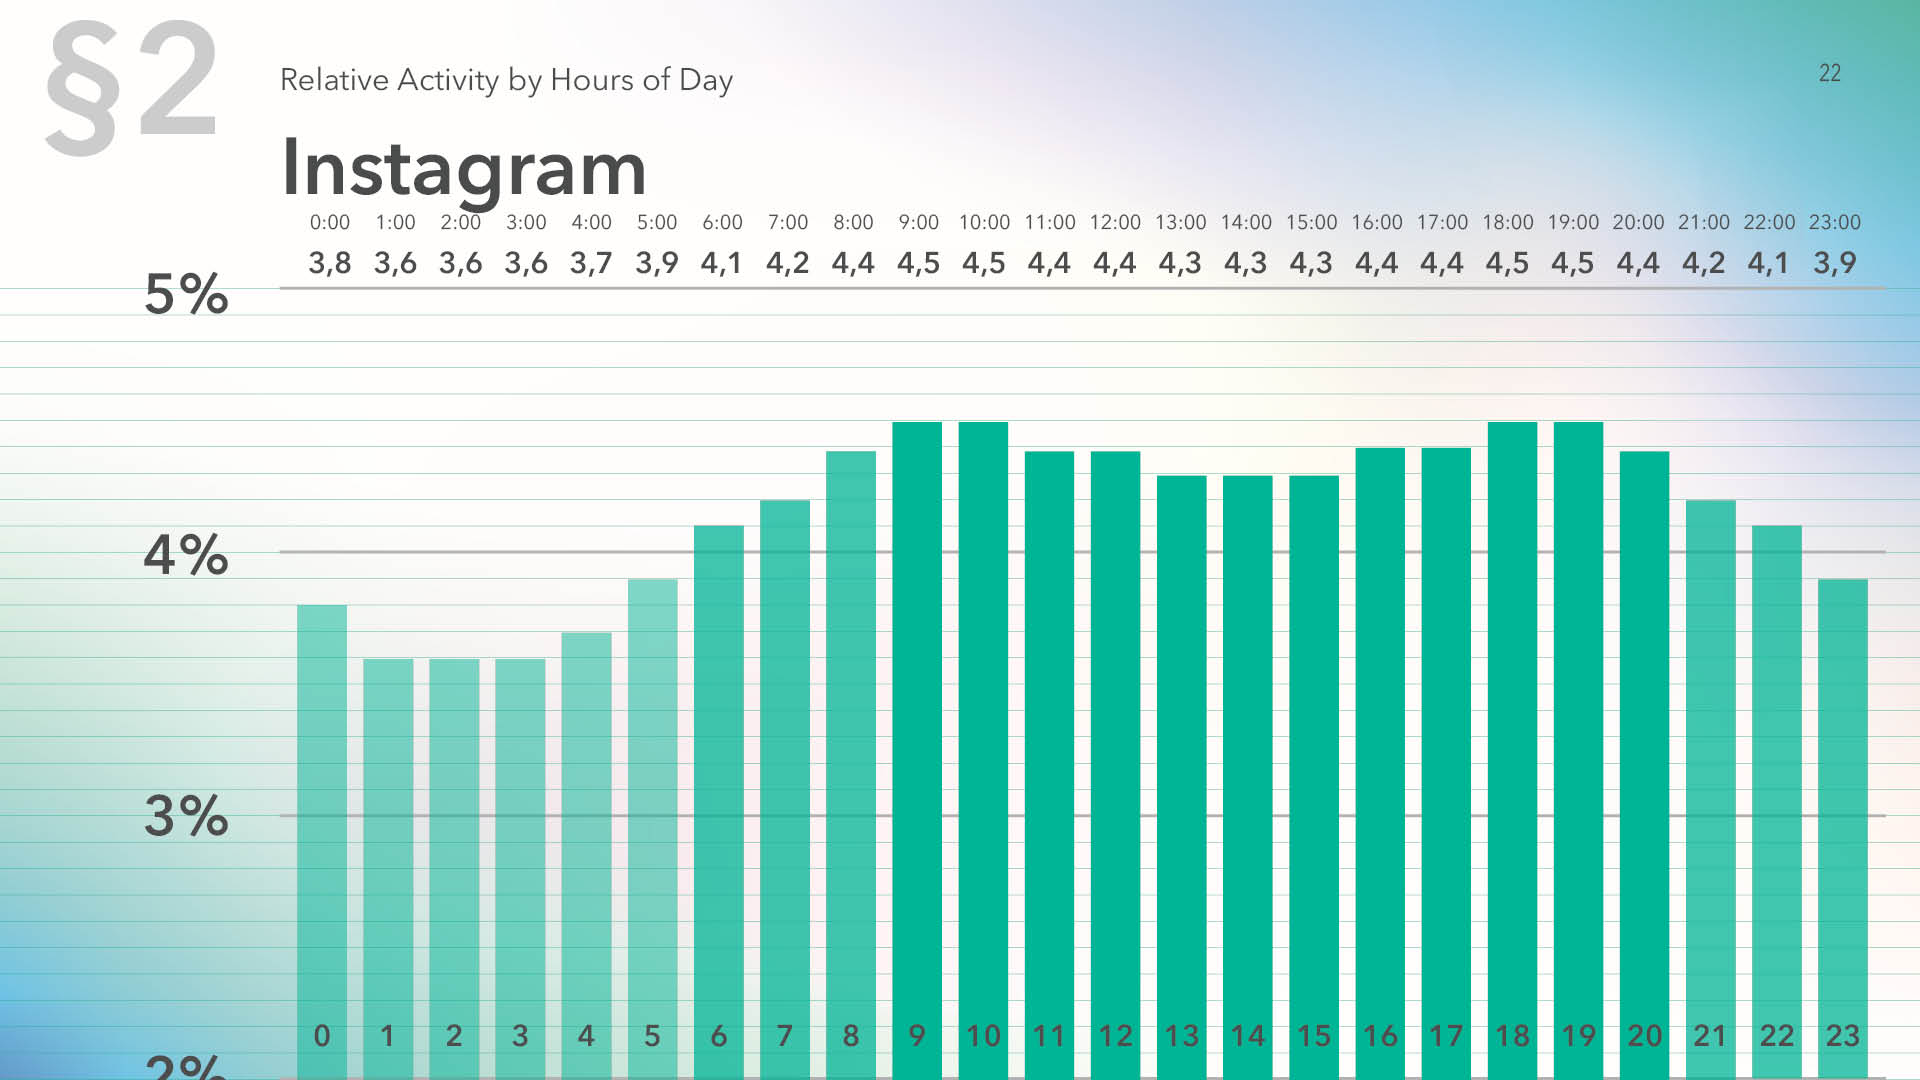 Relative audience activity on Instagram by hour of the day, 2019